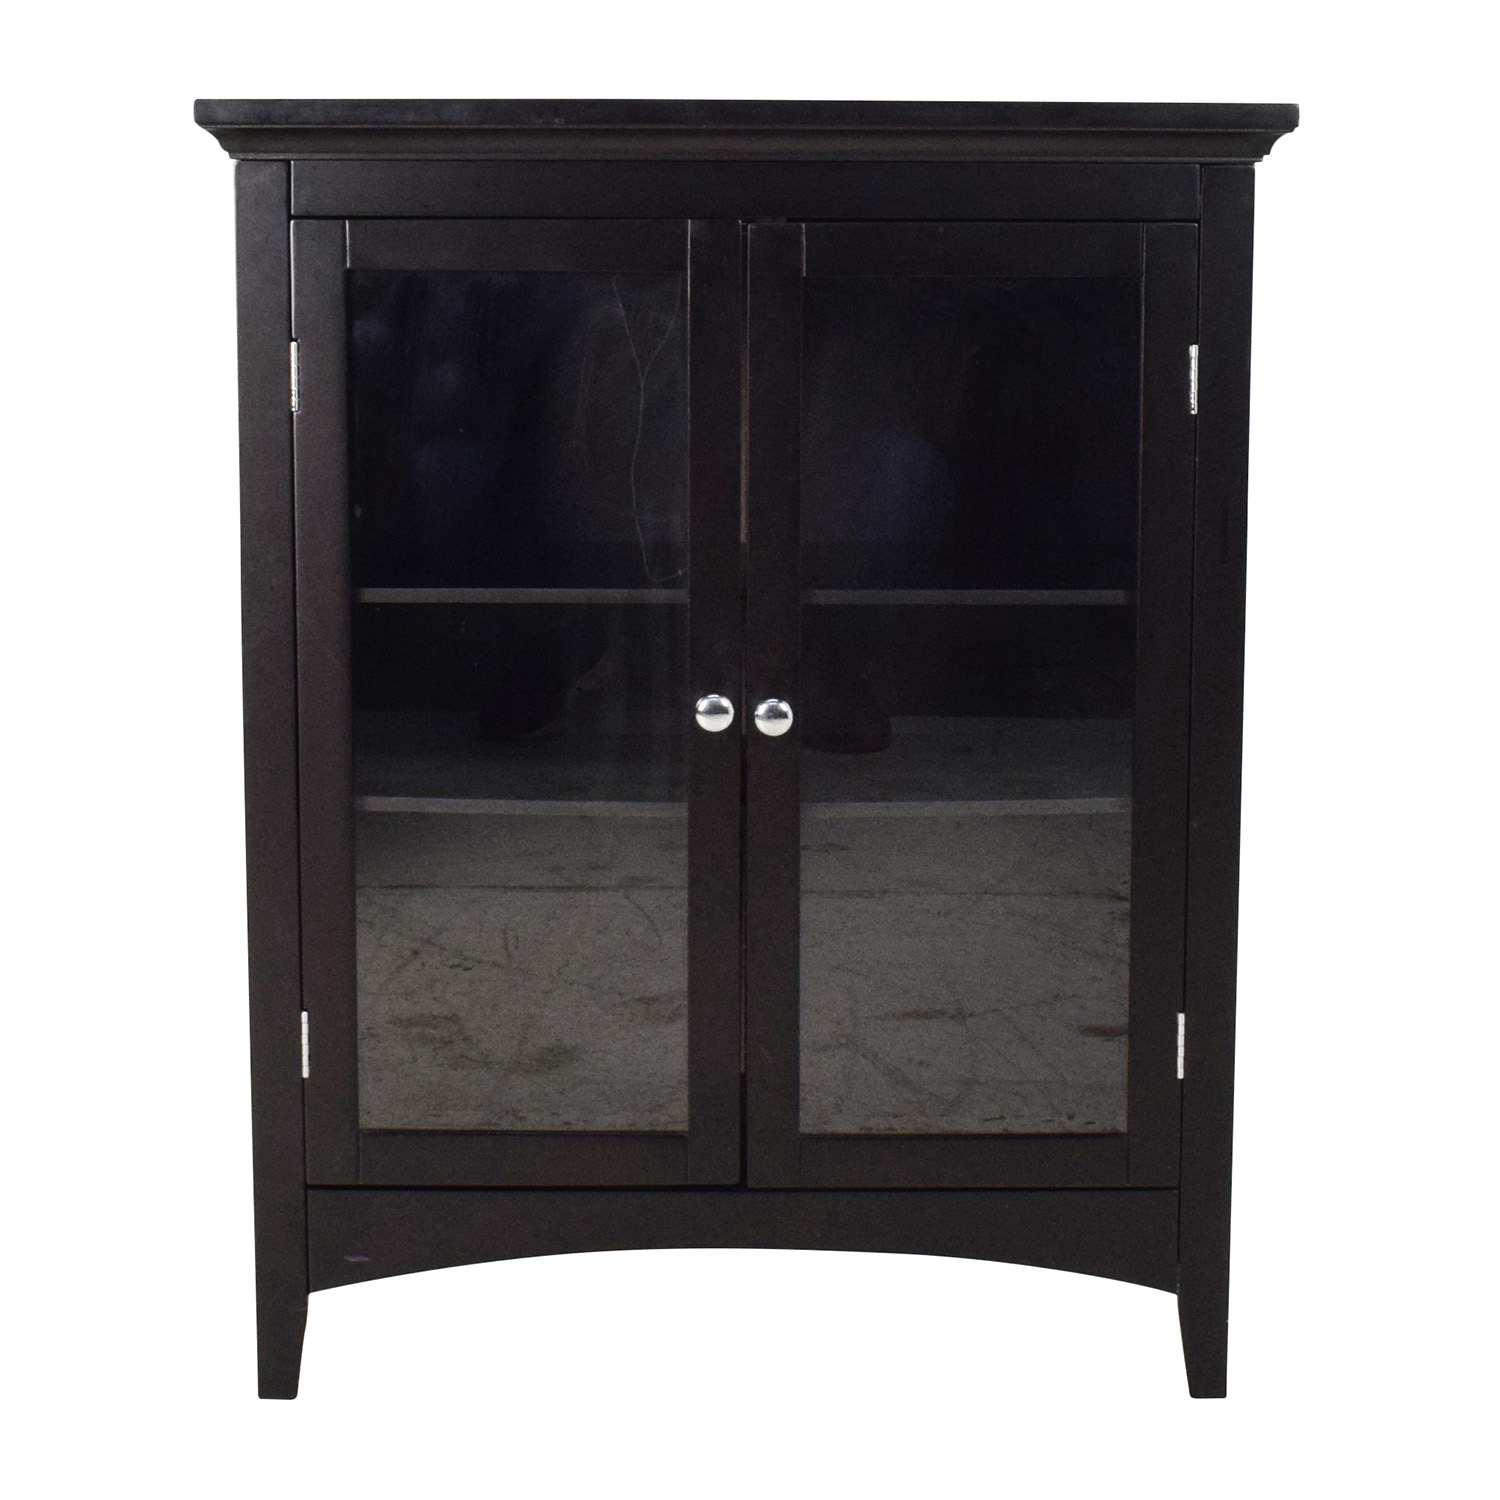 buy Dark Brown Glass Door Cabinet Cabinets & Sideboards